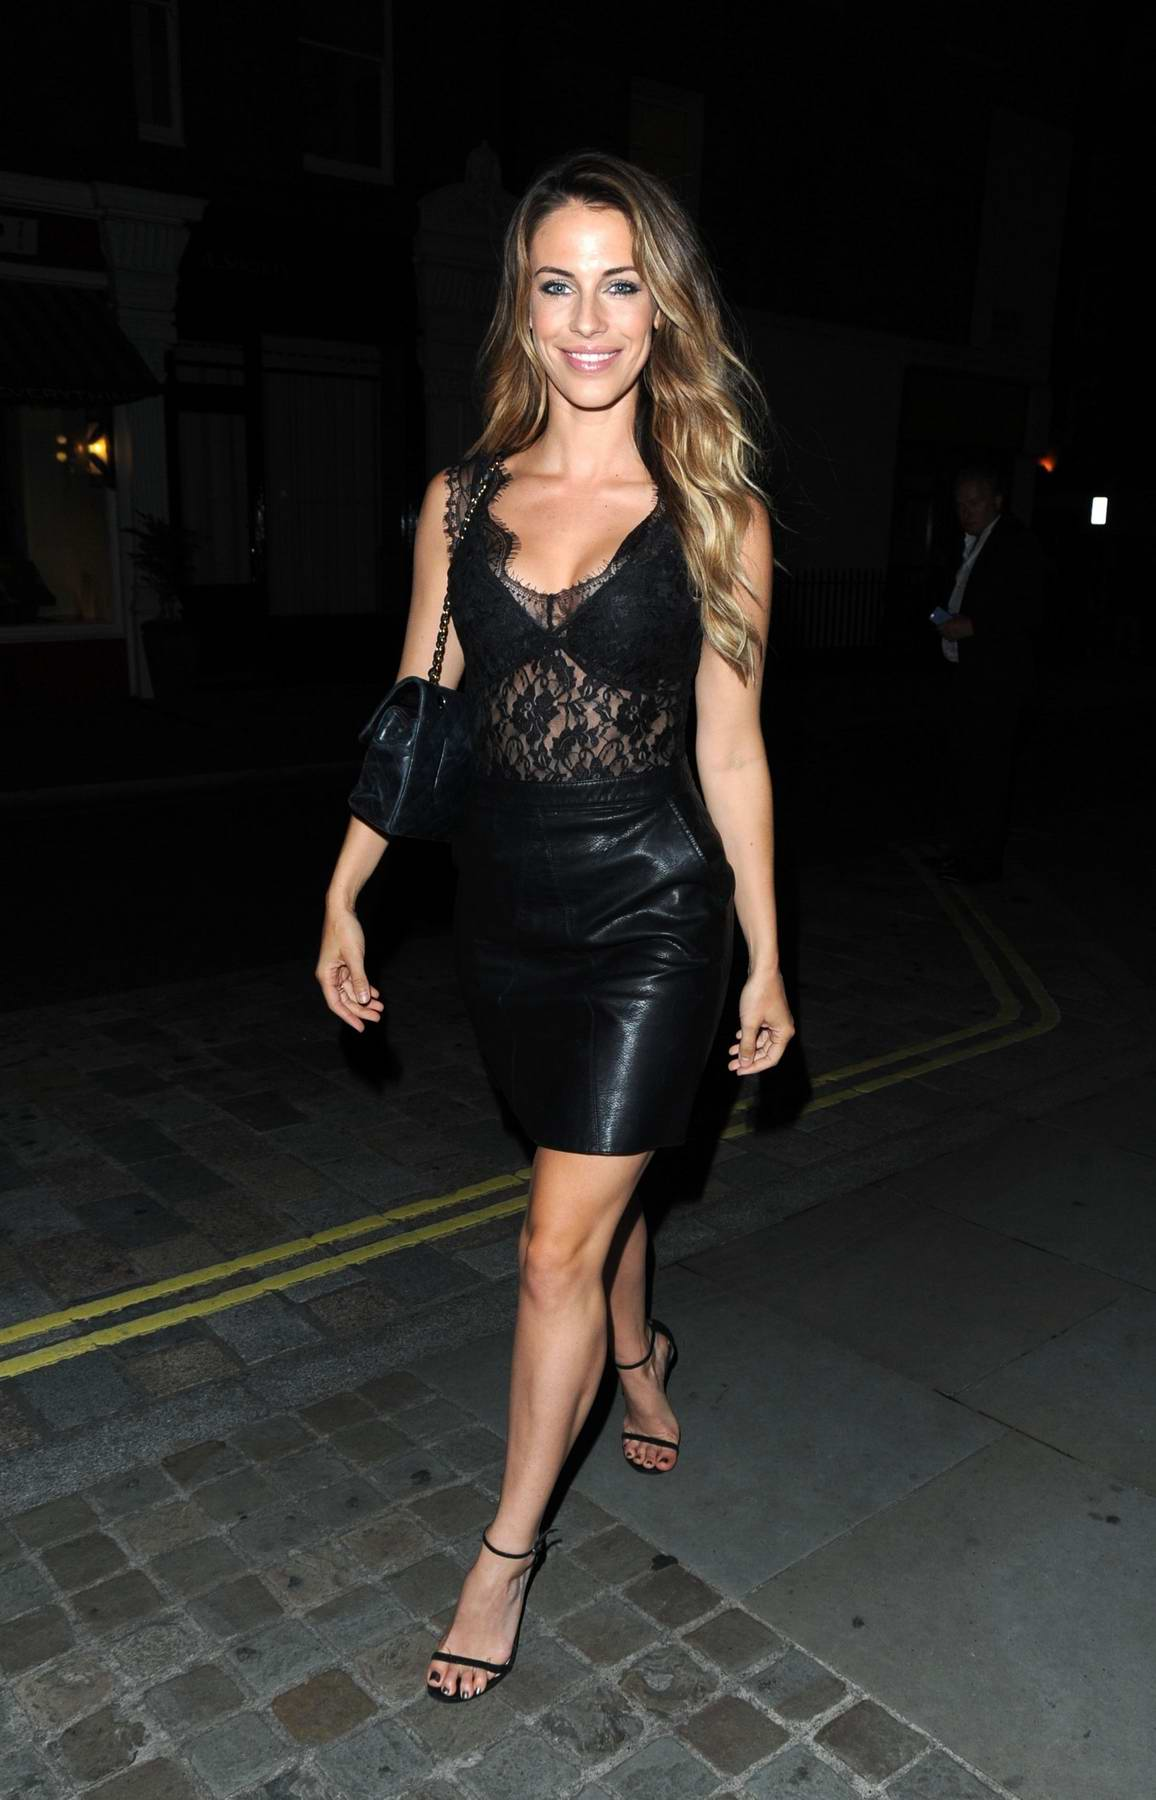 Jessica Lowndes enjoying a Night out at the Chiltern Firehouse in London